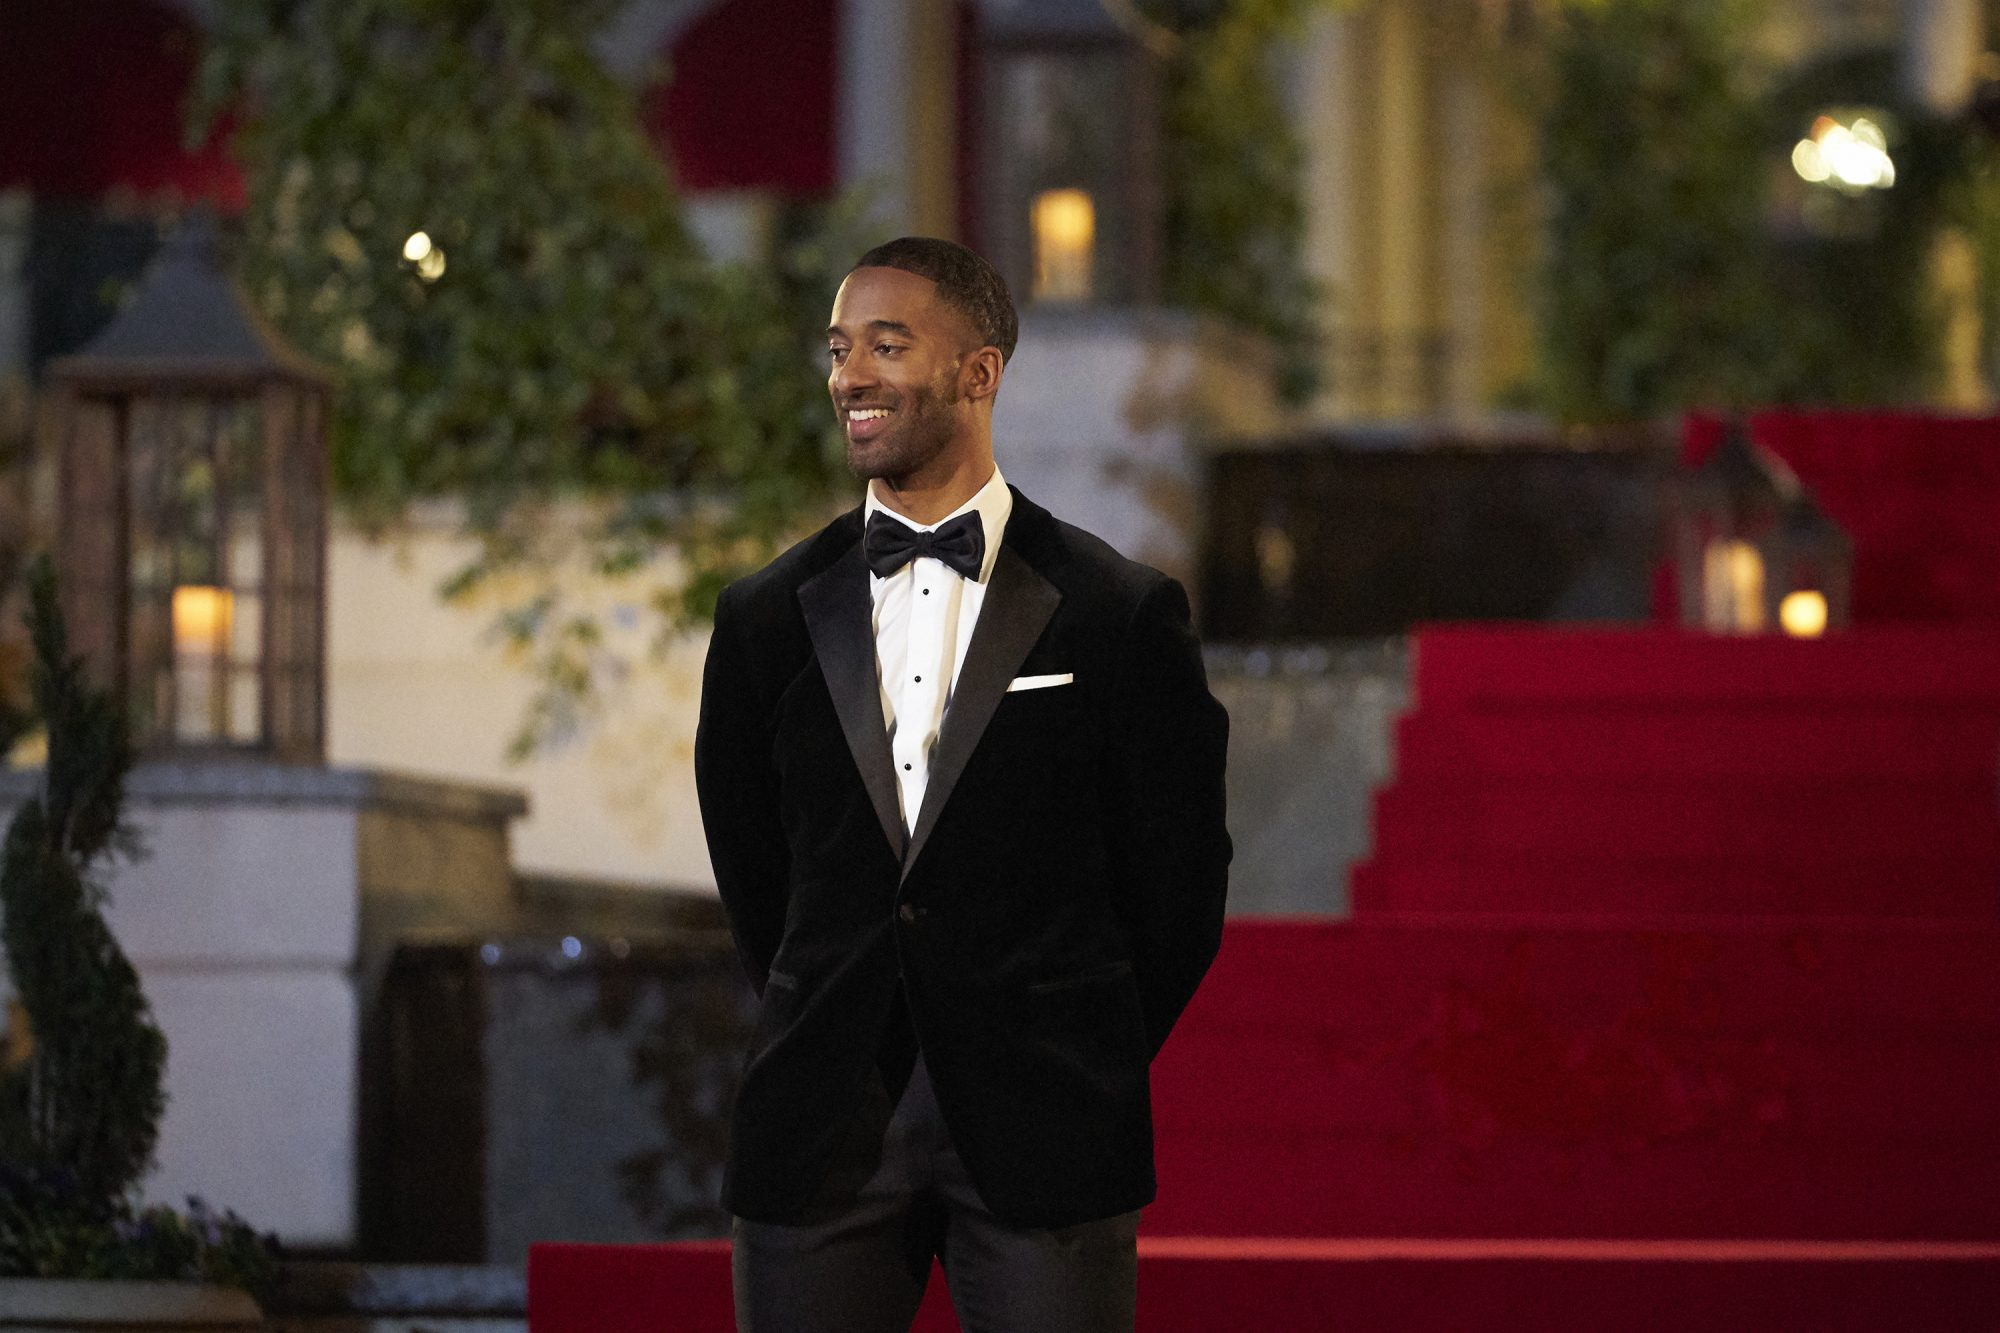 'The Bachelor' Executive on Matt James' Ratings and Diversifying the Audience